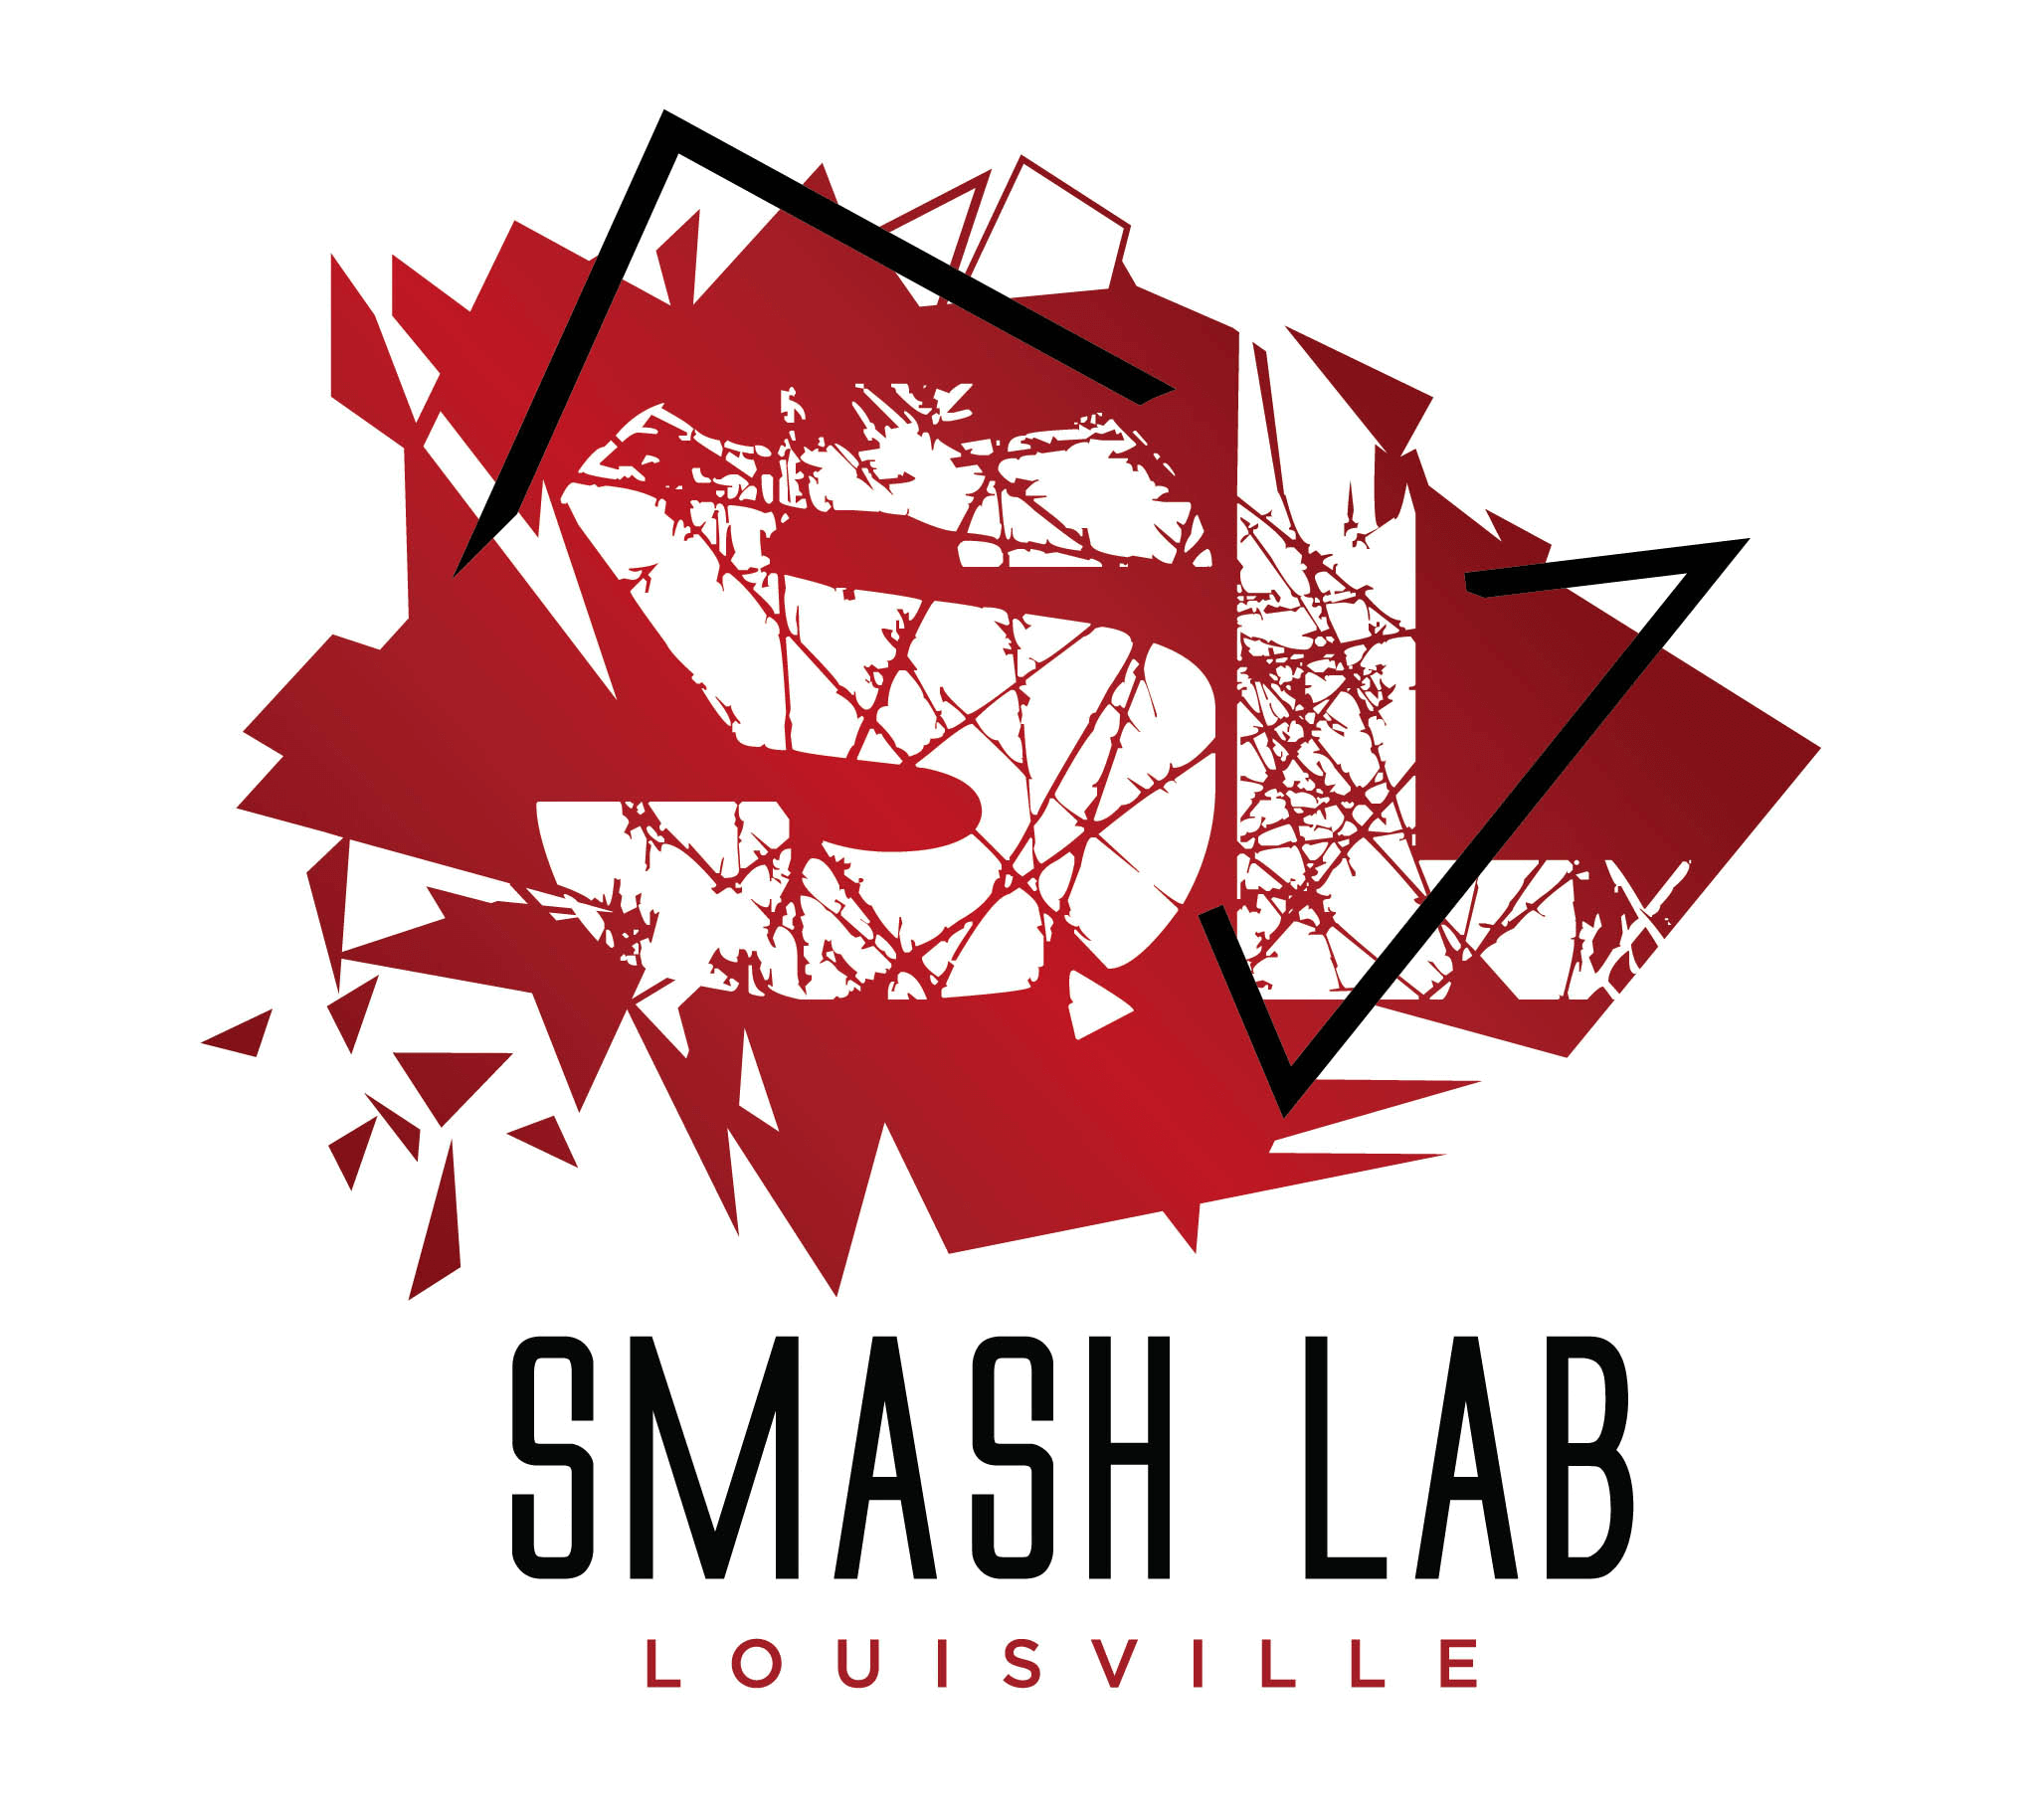 Smash Lab Louisville